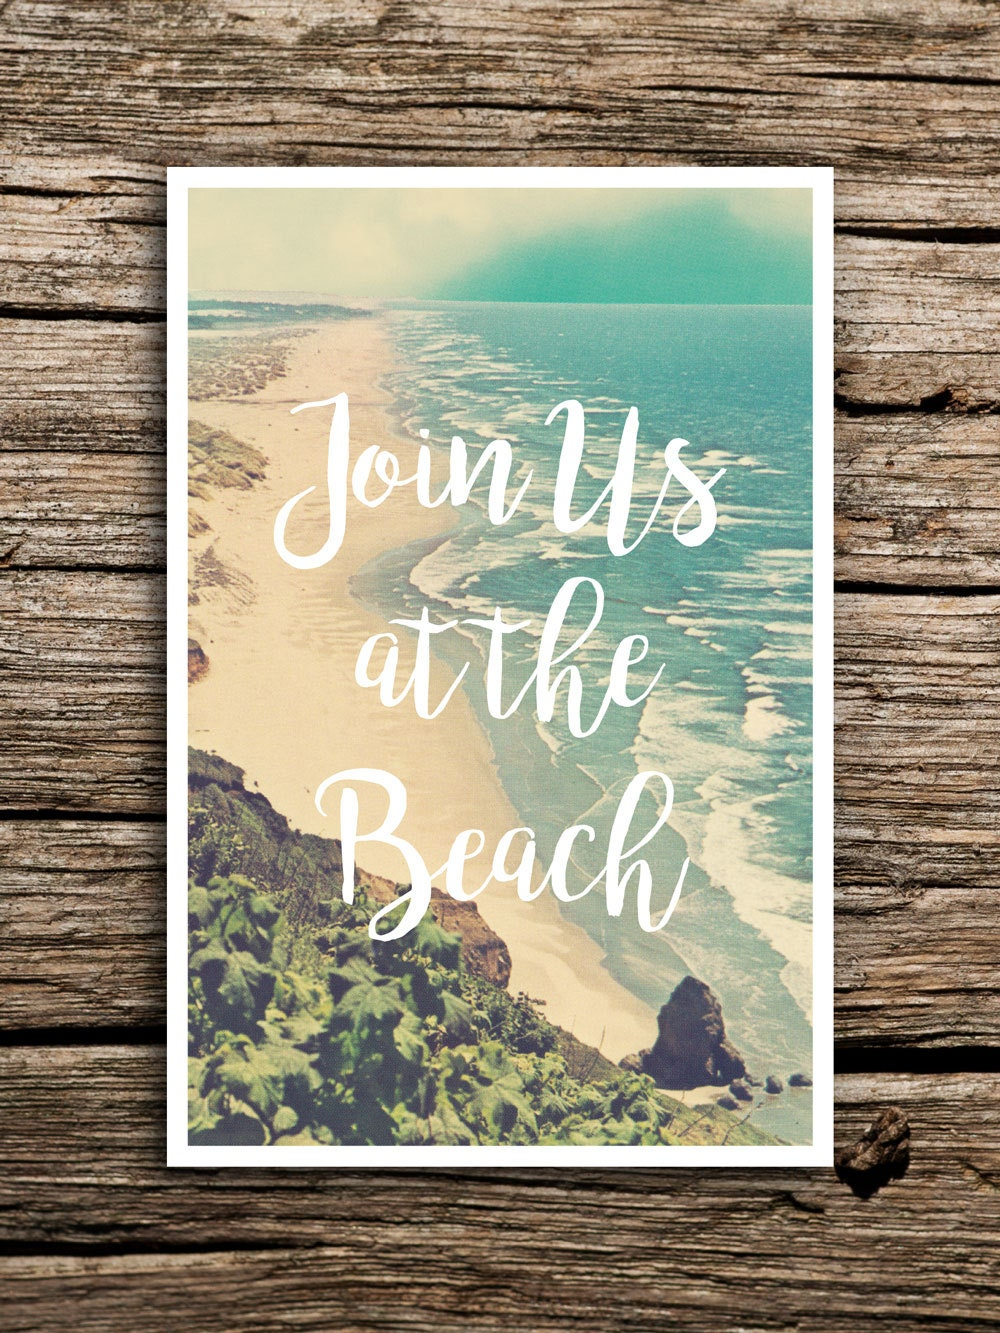 At the beach wedding save the date postcard destination for Ideas on a postcard